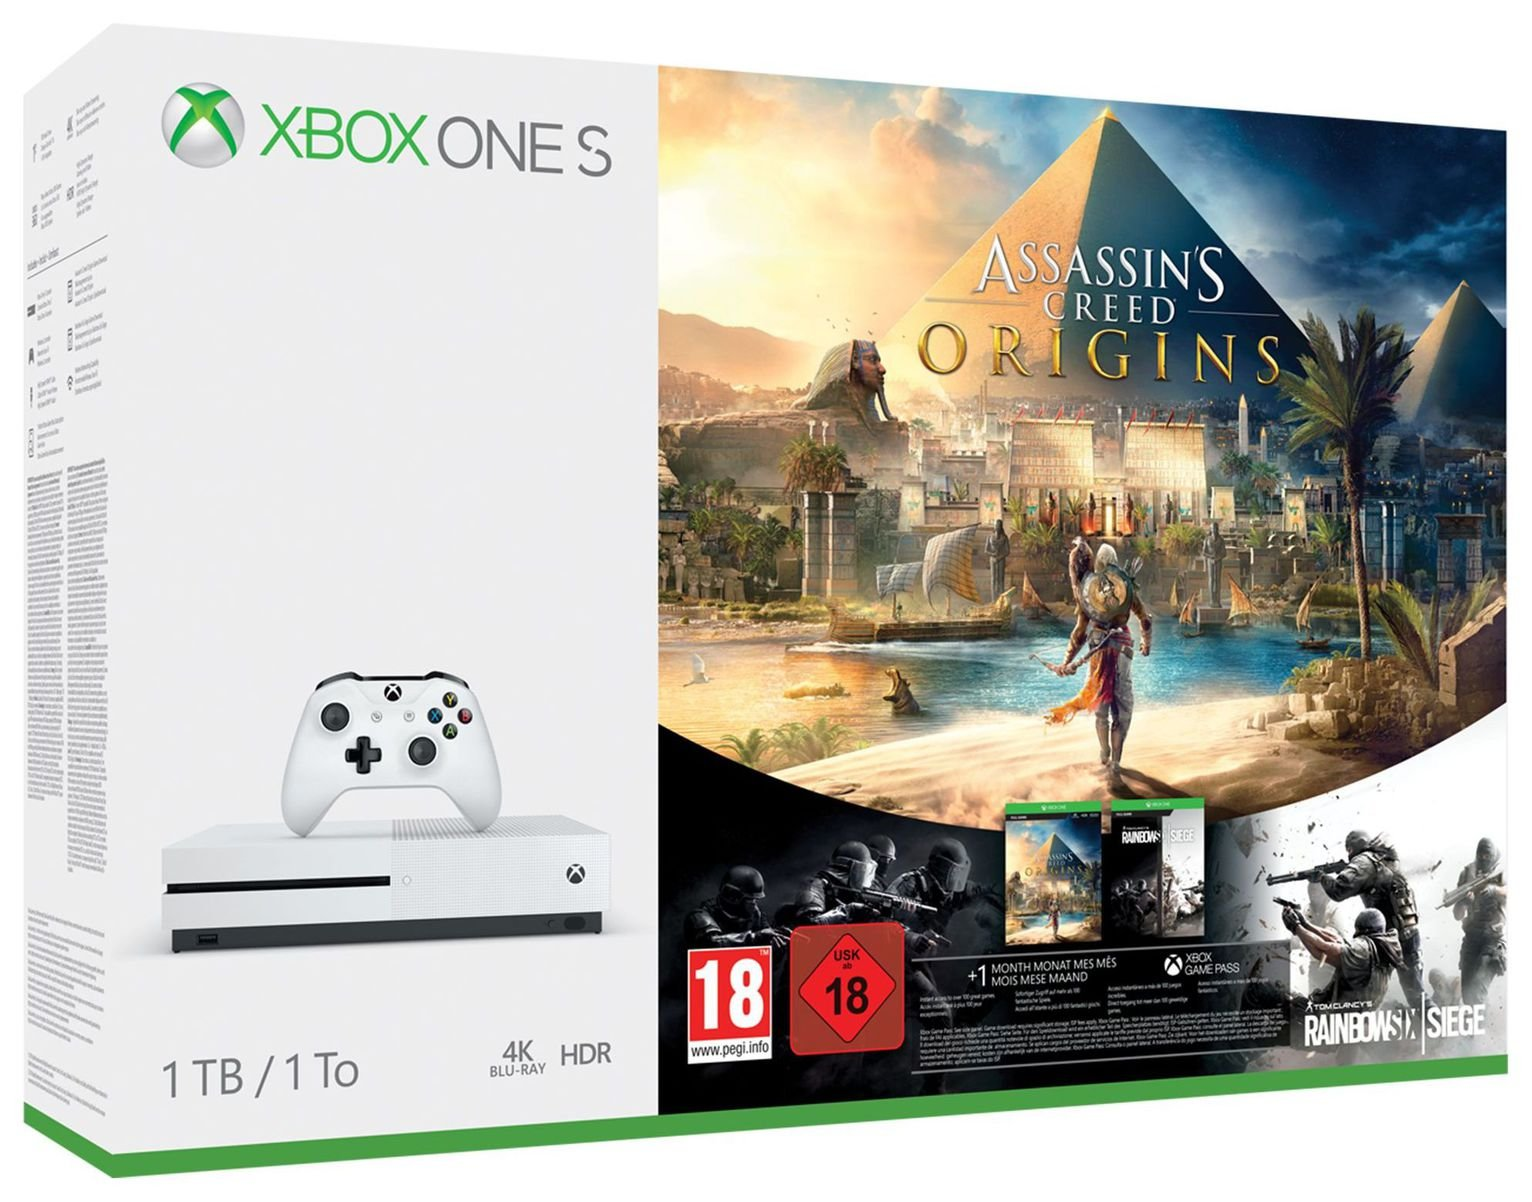 Xbox One S 1TB Assassins Creed Origins Bonus Bundle